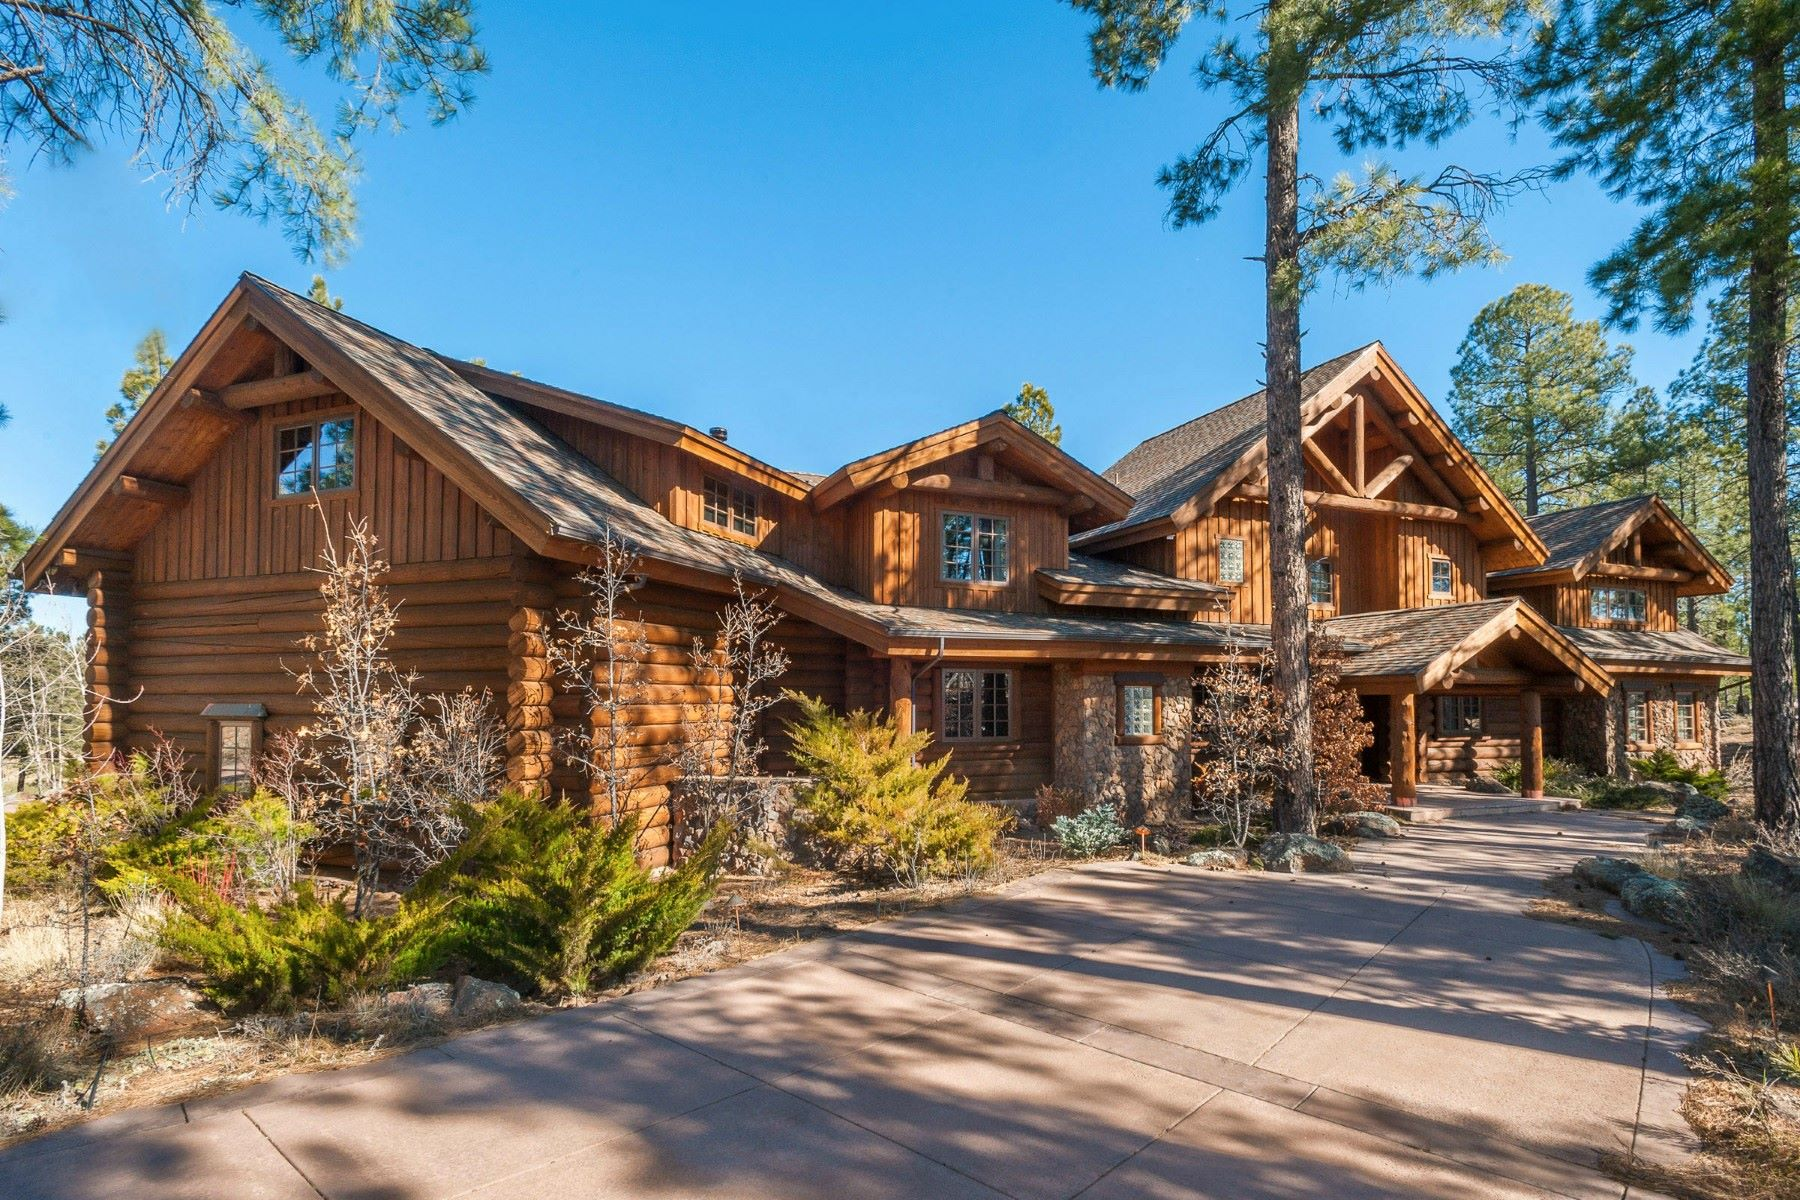 단독 가정 주택 용 매매 에 Magnificent Log Luxury Retreat at Forest Highlands 2892 Andrew Douglass, Flagstaff, 아리조나, 86005 미국